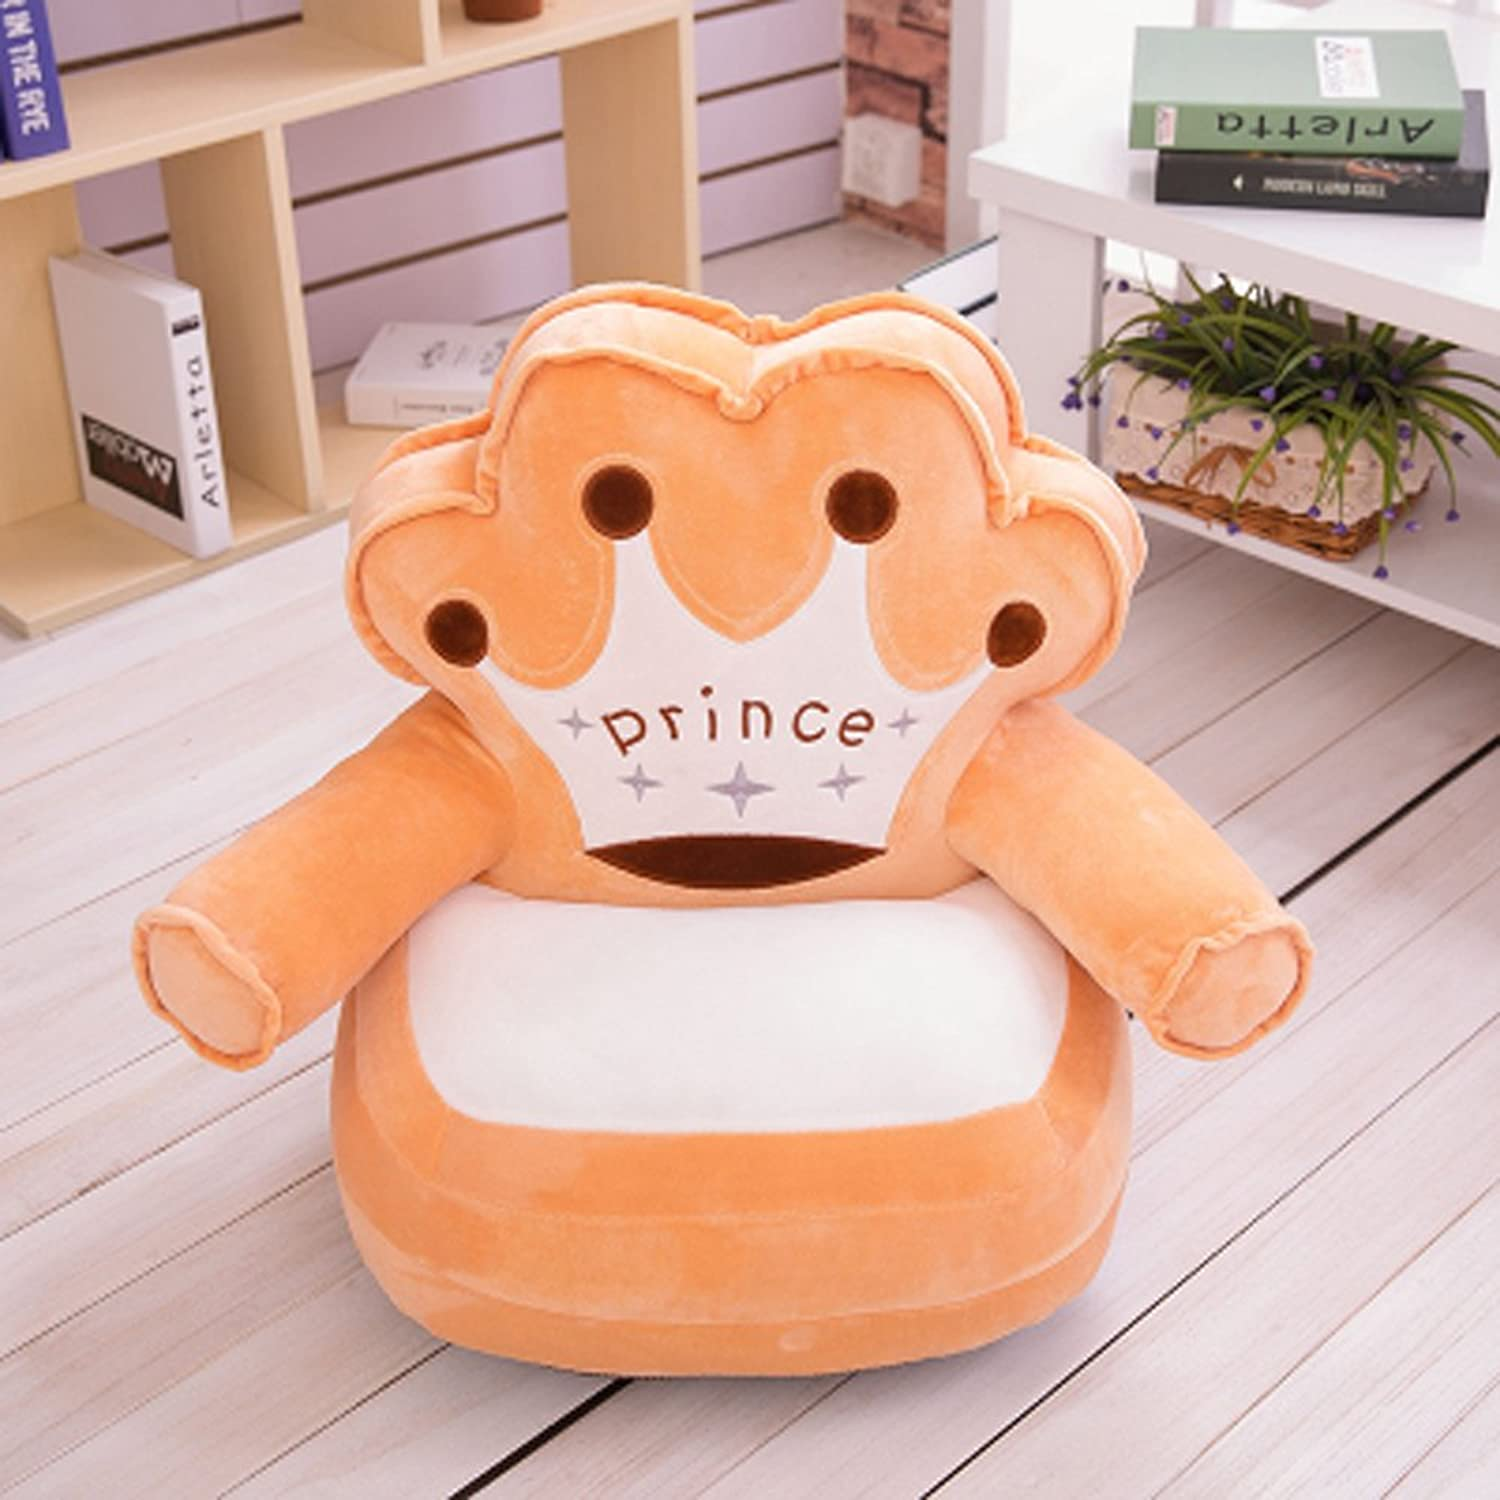 Kids Mini Lounger Sofa,Bean Bag Chair Brown,Novelty Birthday Gift Prince Crown PP Cotton Filler Washable 19 x19